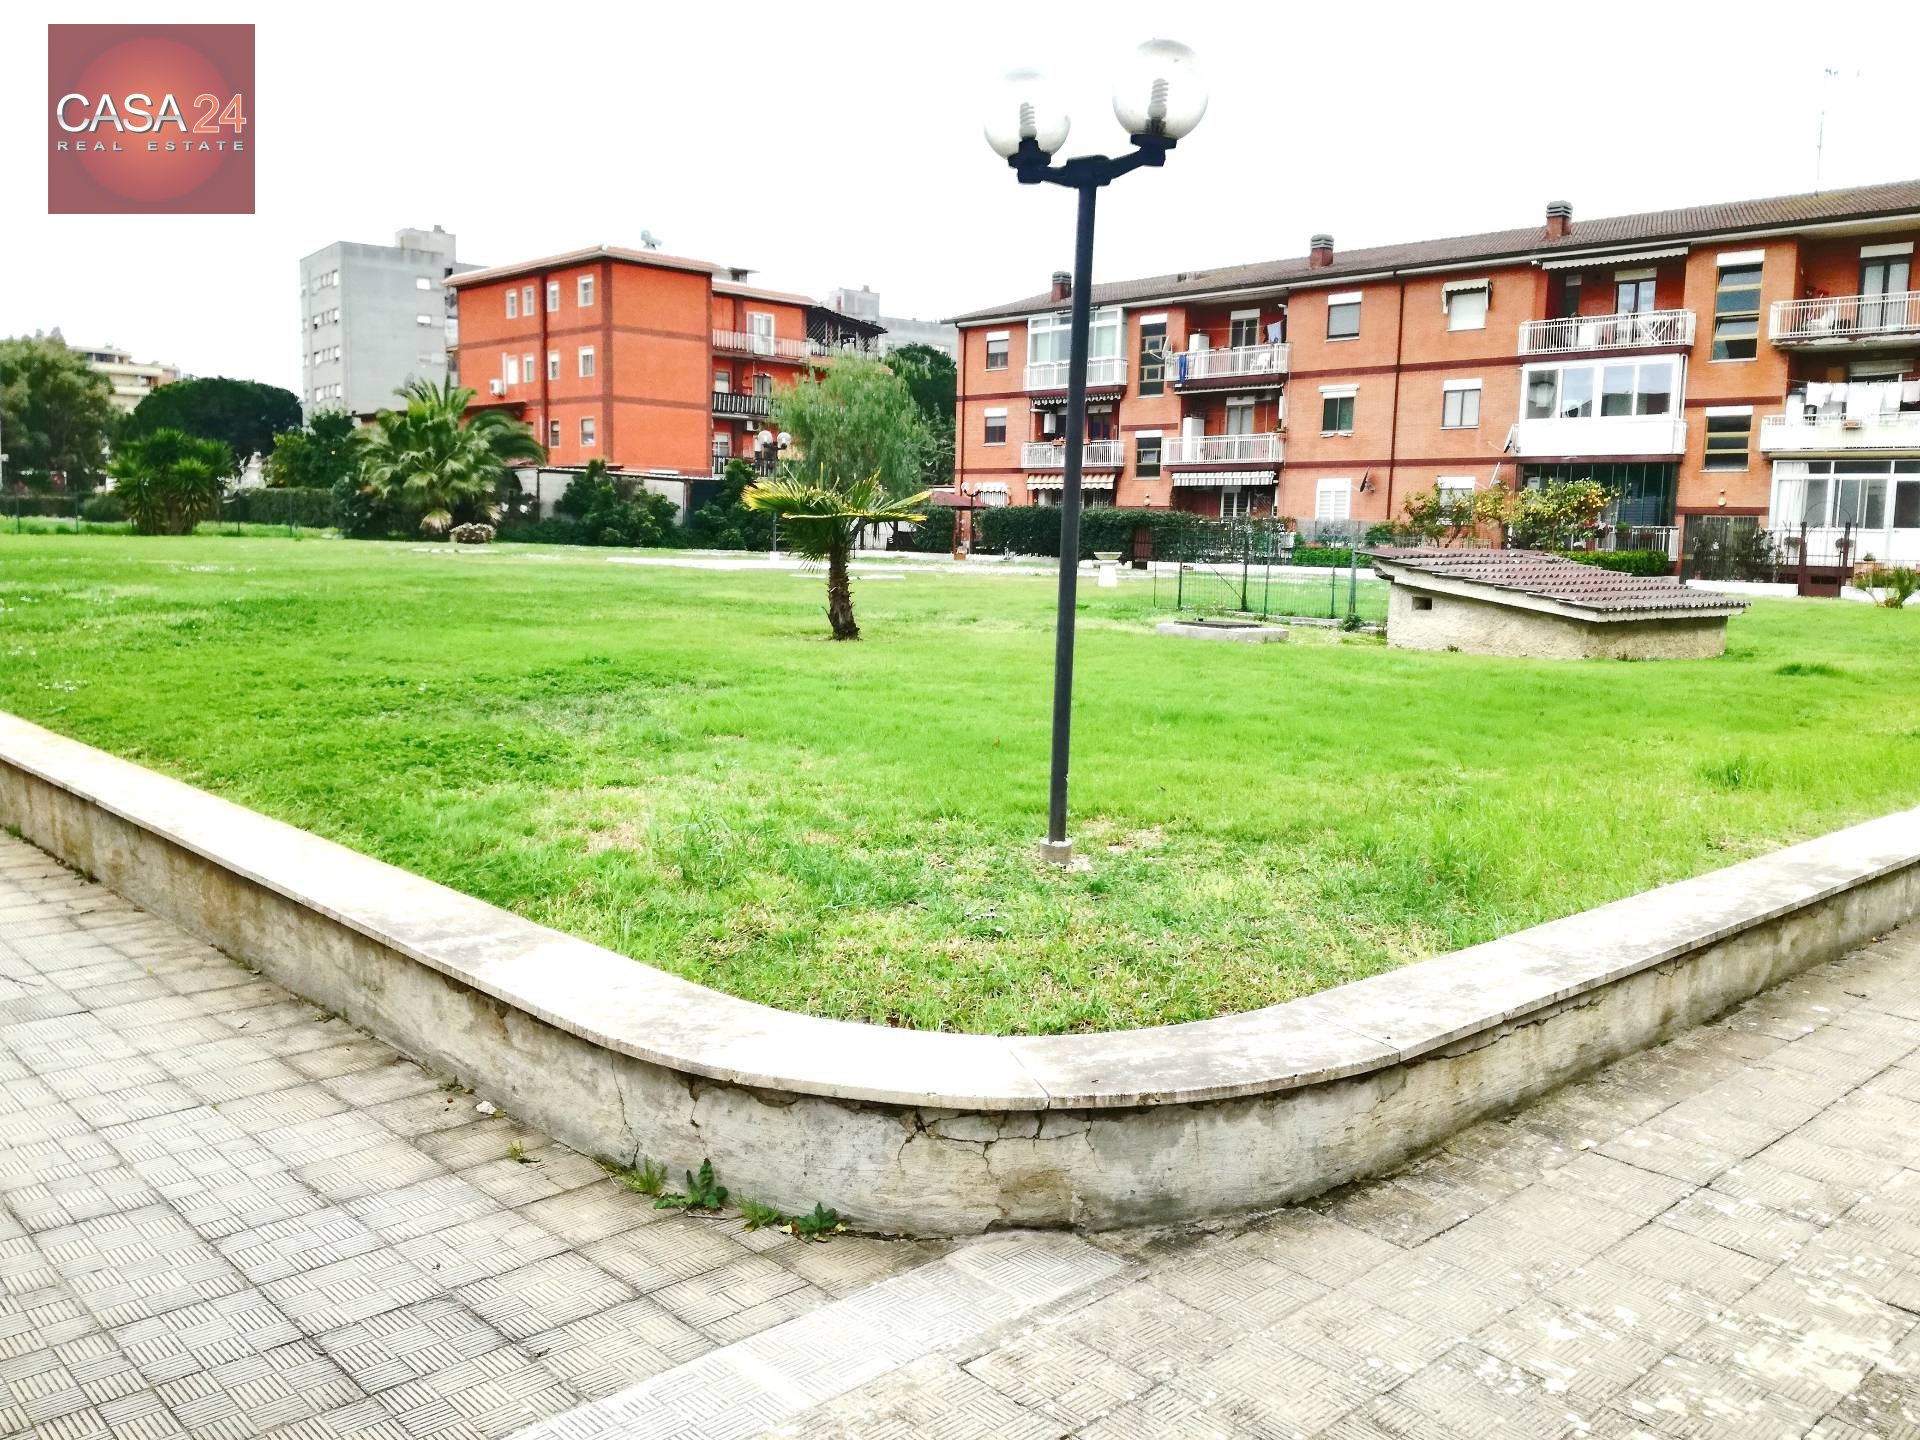 latina vendita quart: q2 zona centro agora casa24-real-estate